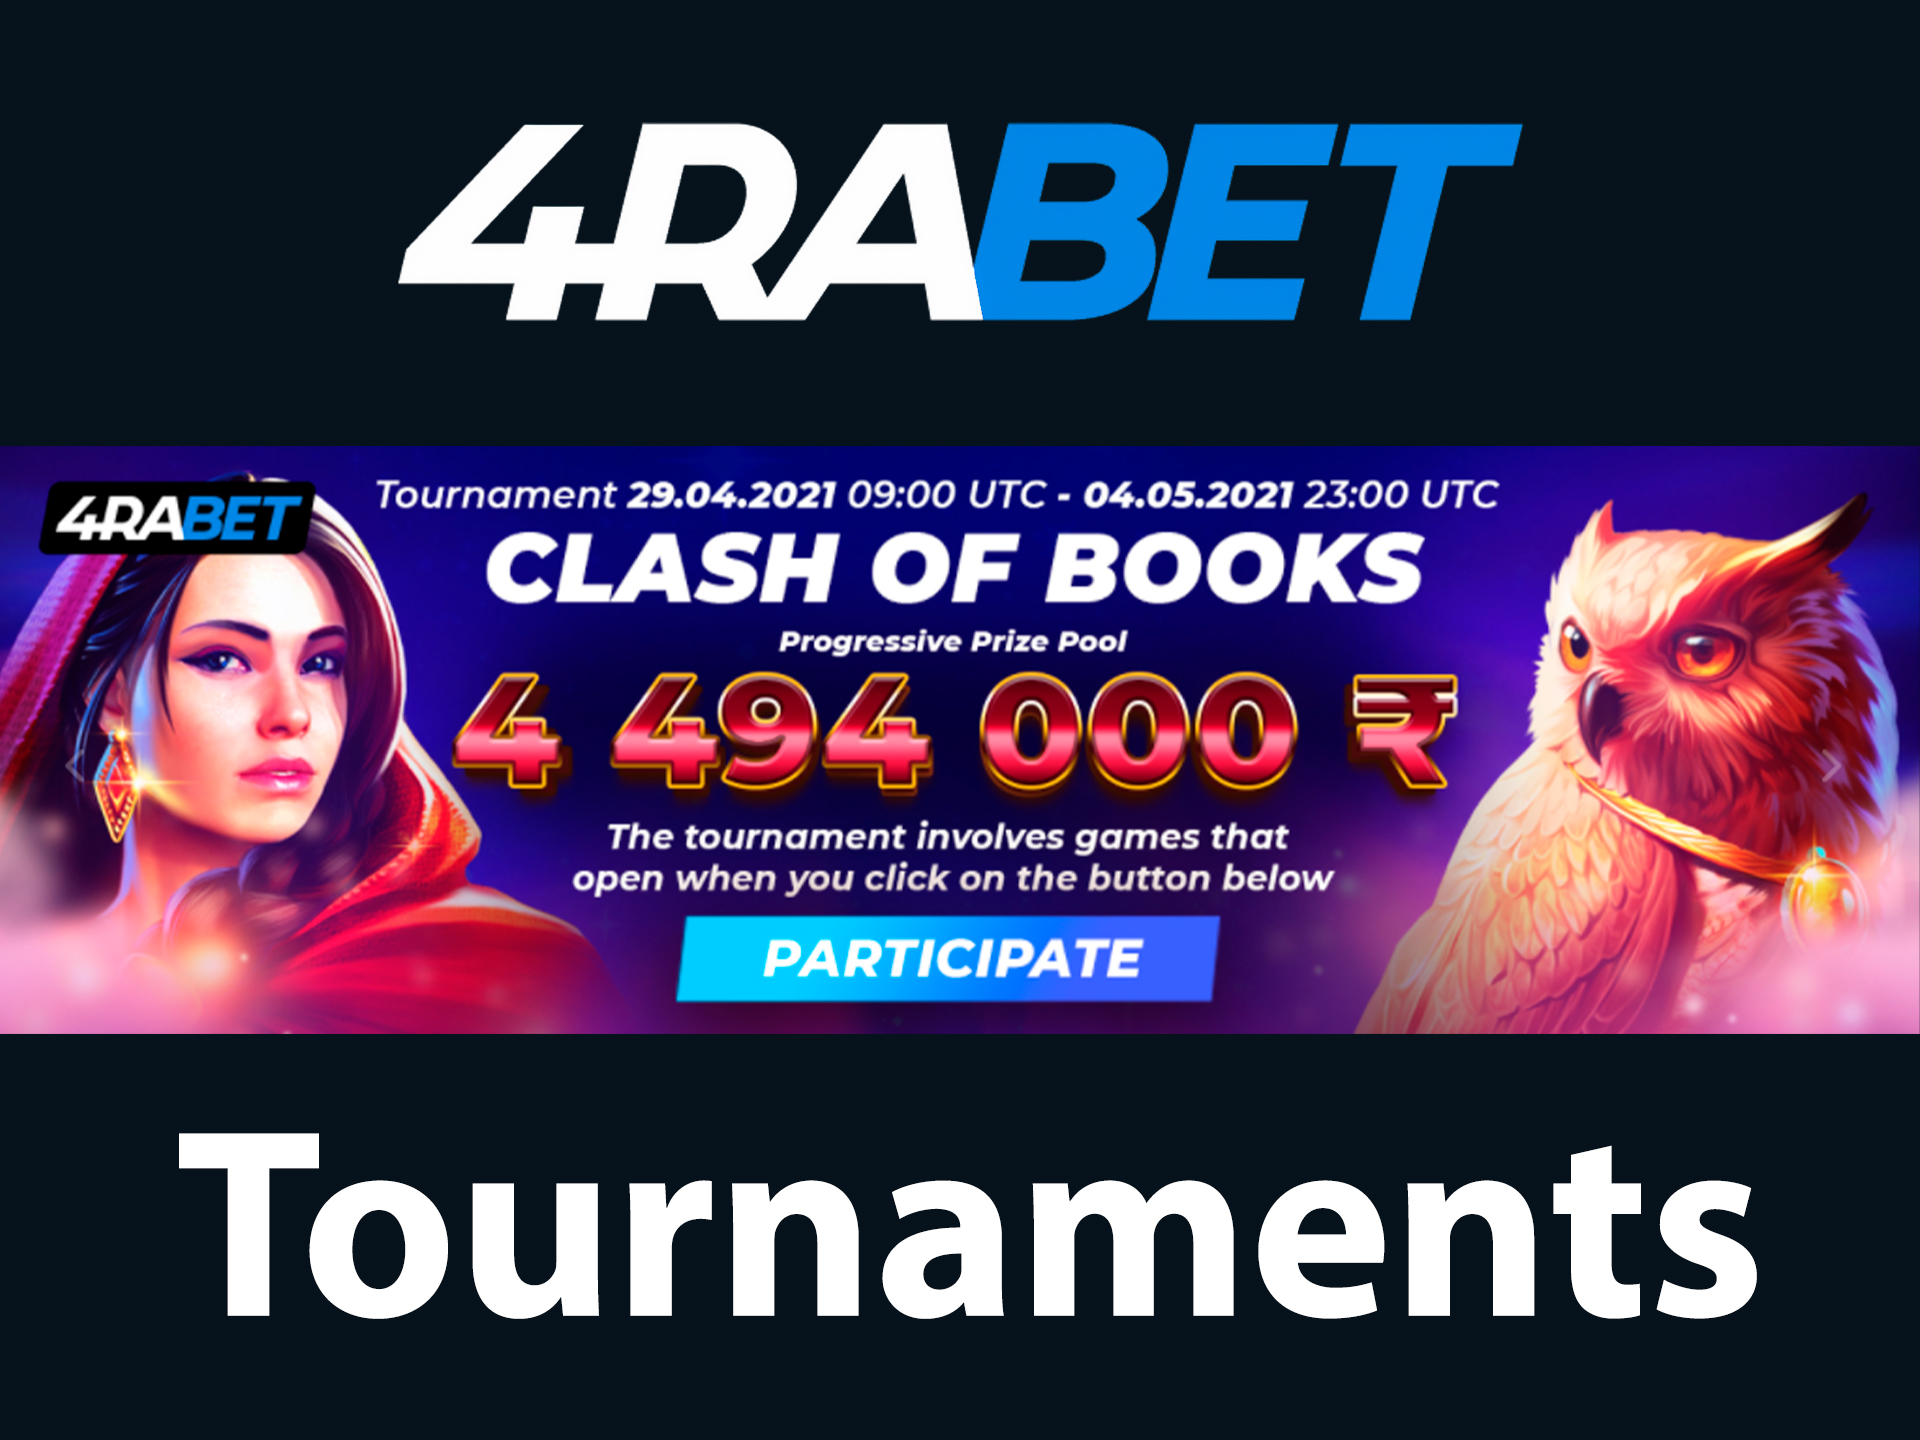 Participate in 4rabet and win prizes from casino games.